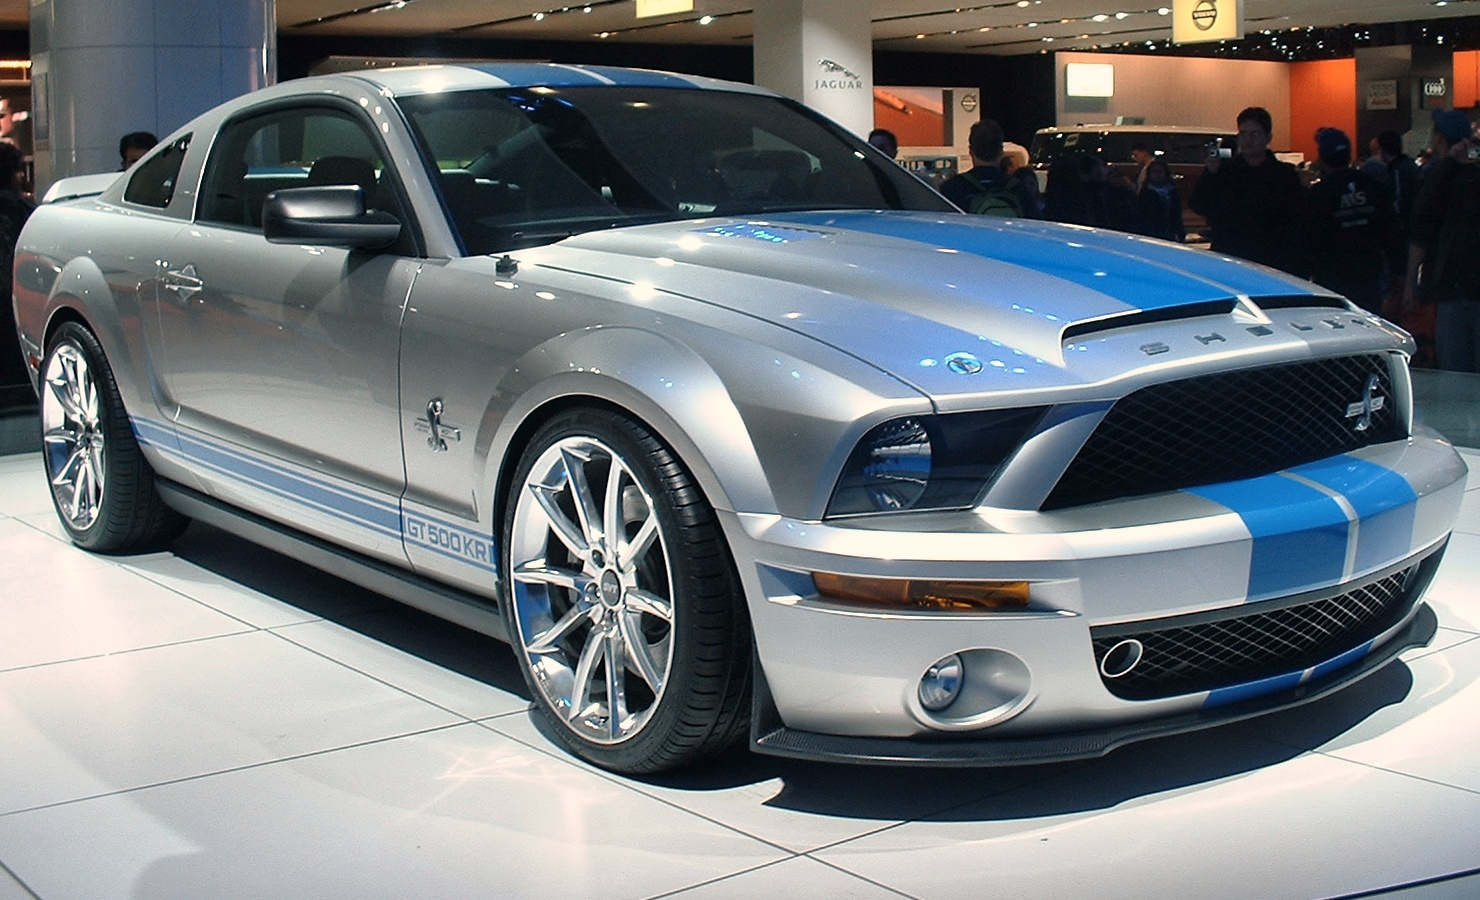 2009 Ford Shelby Gt500 #8